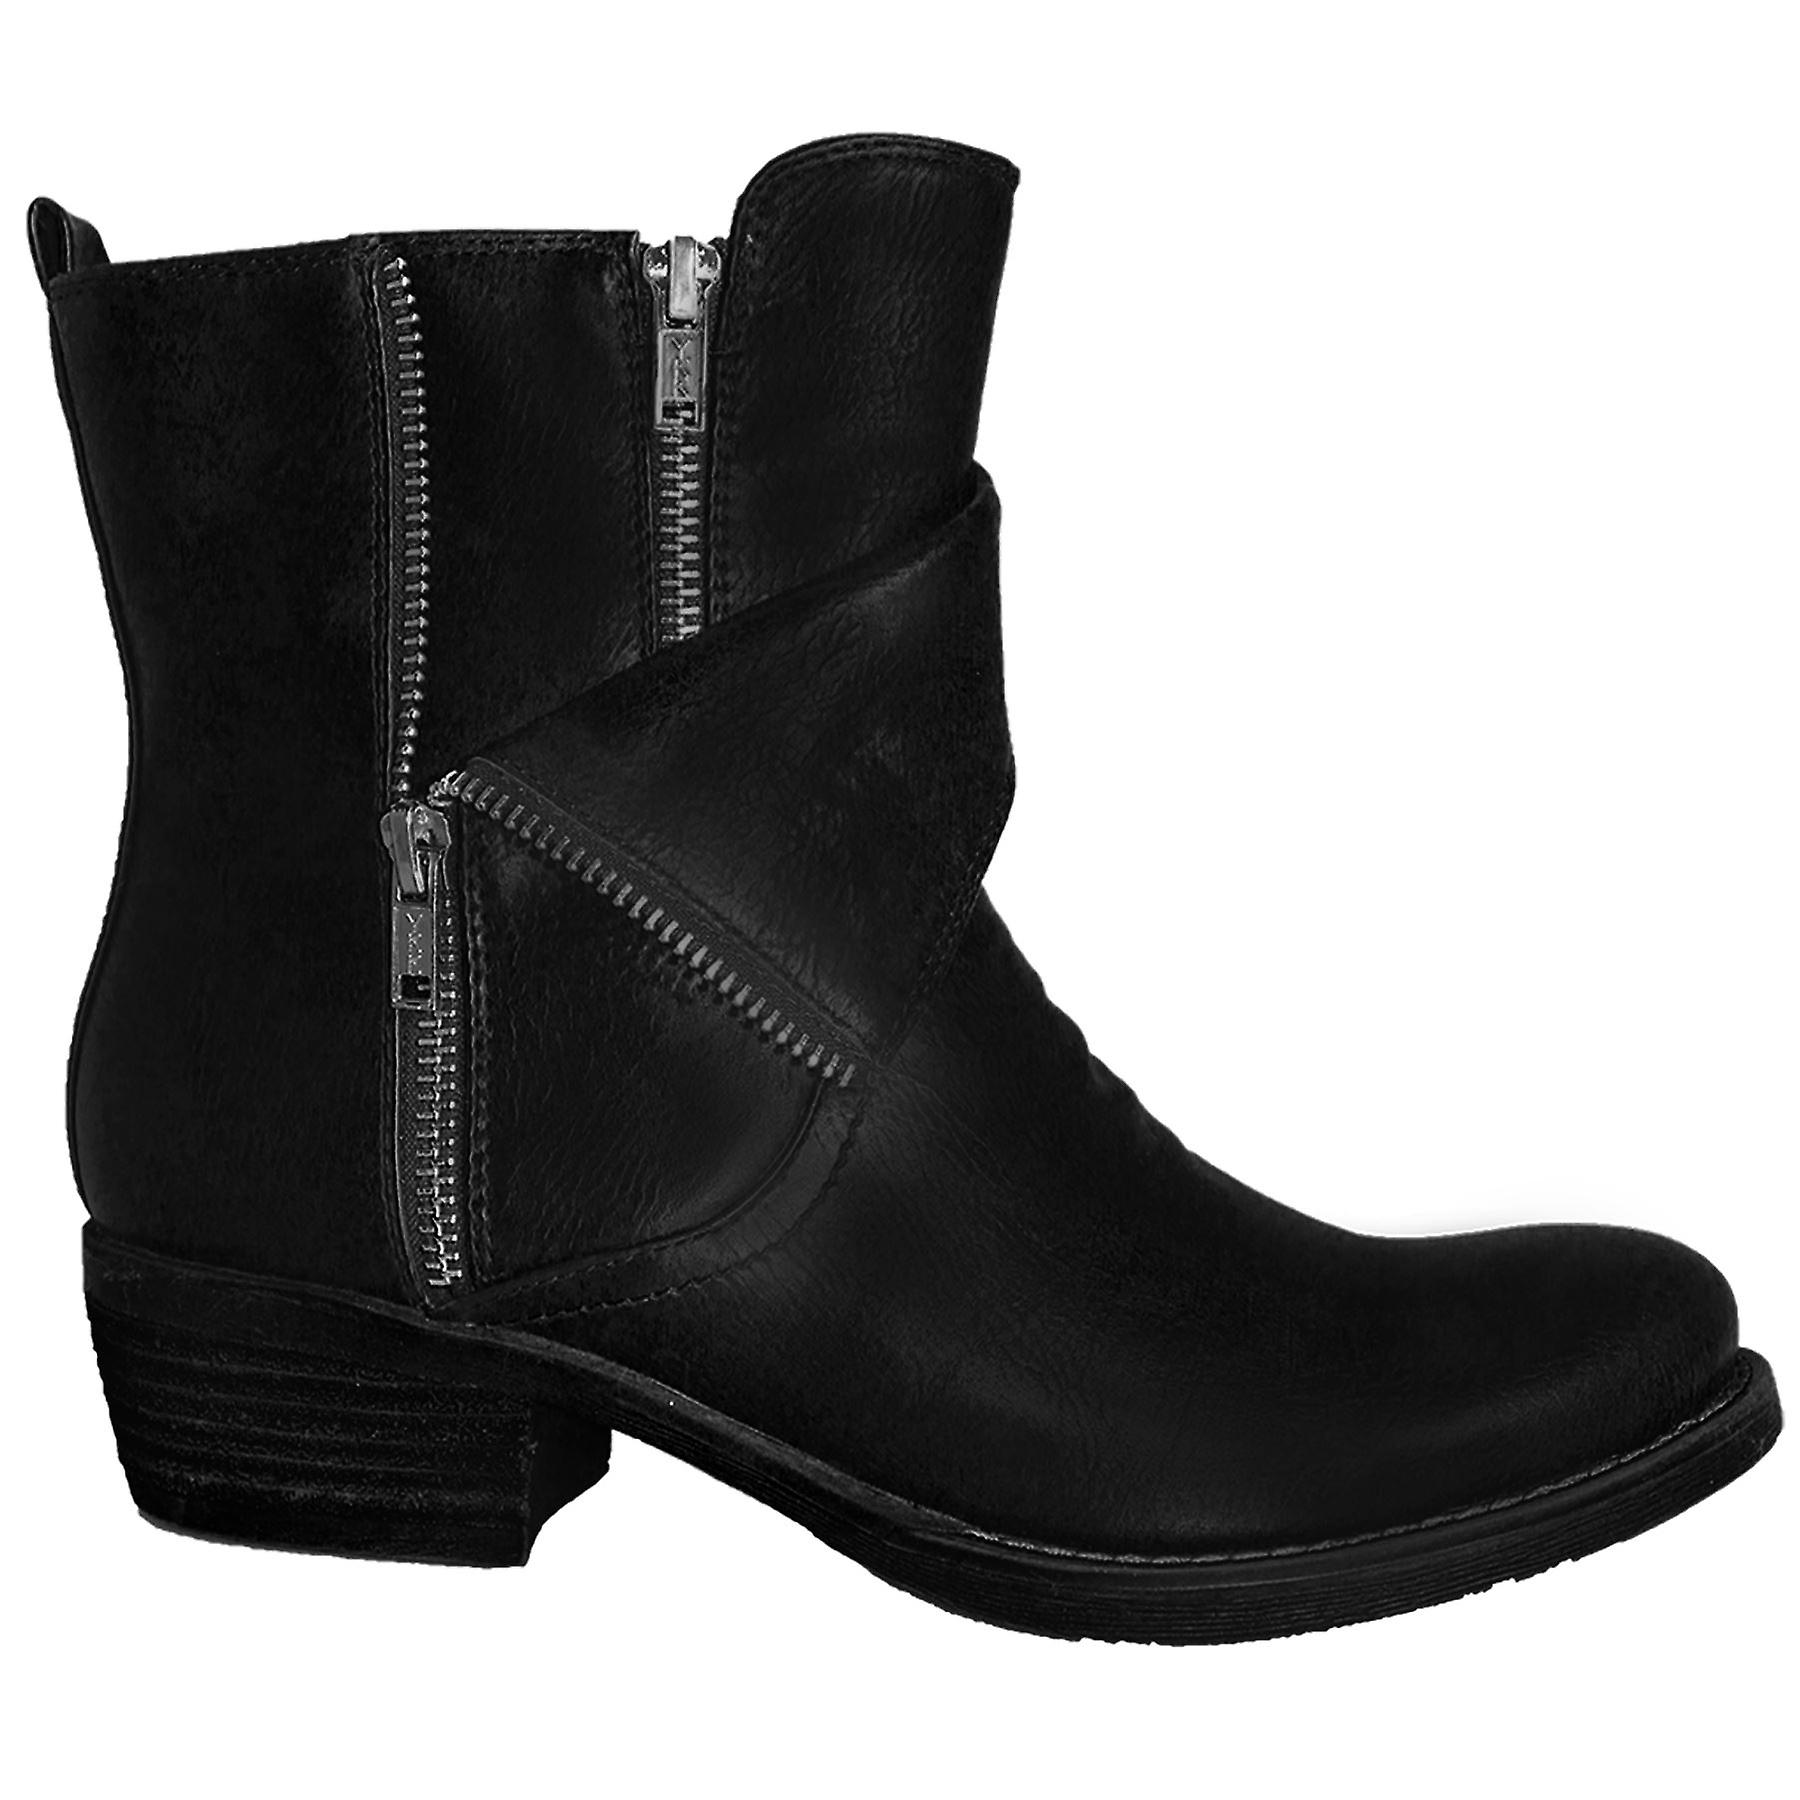 Ladies PU Faux Leather Low Chunky Heel Women's Warm Double Zip Ankle Boots